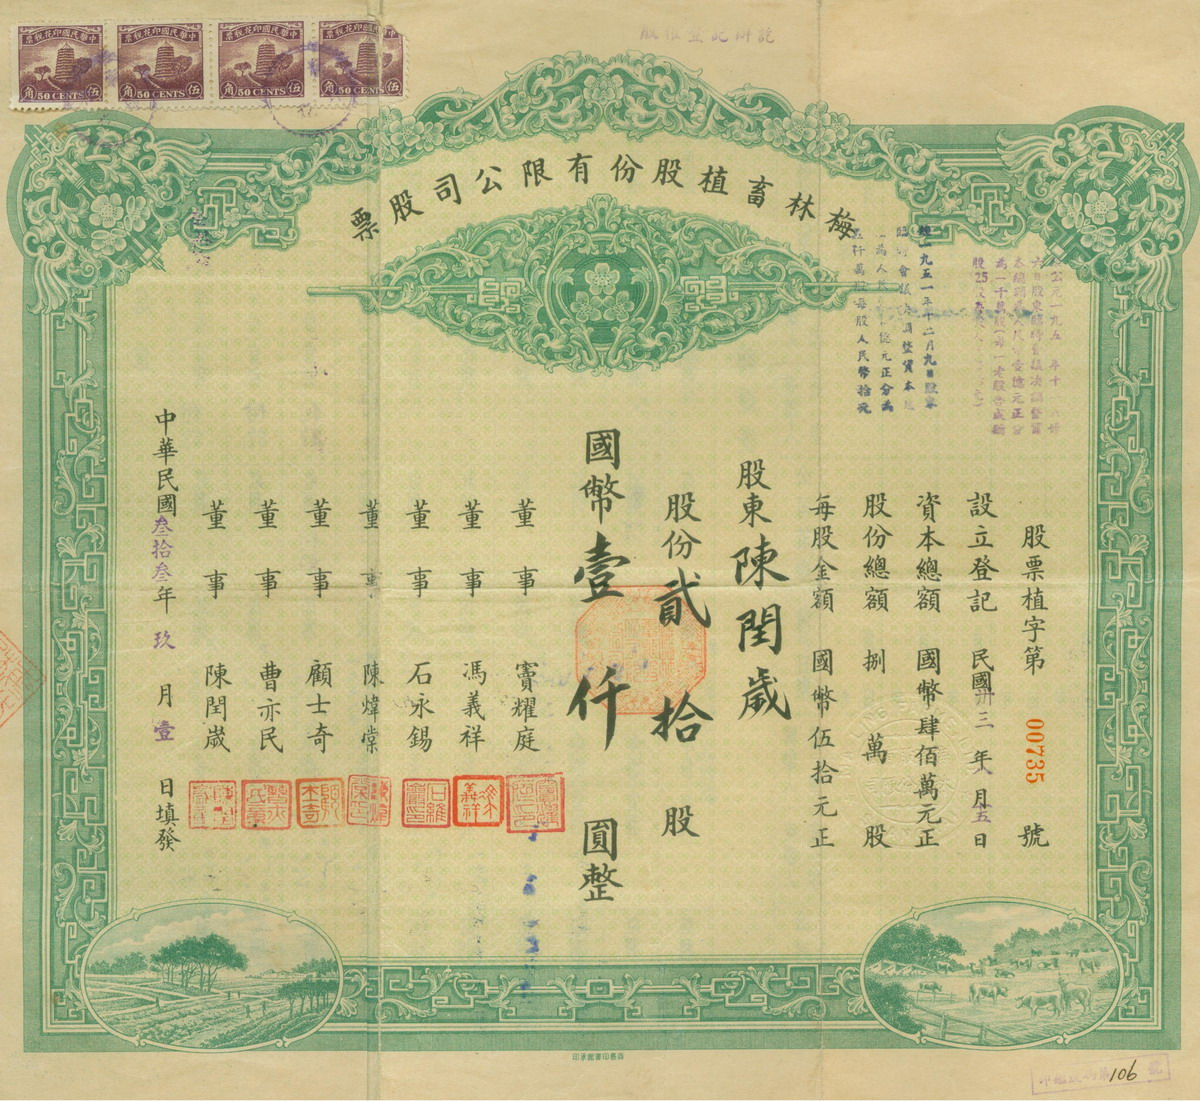 S1084, Shanghai Ma Ling Farms Ltd., Stock Certificate 20 Shares, 1944